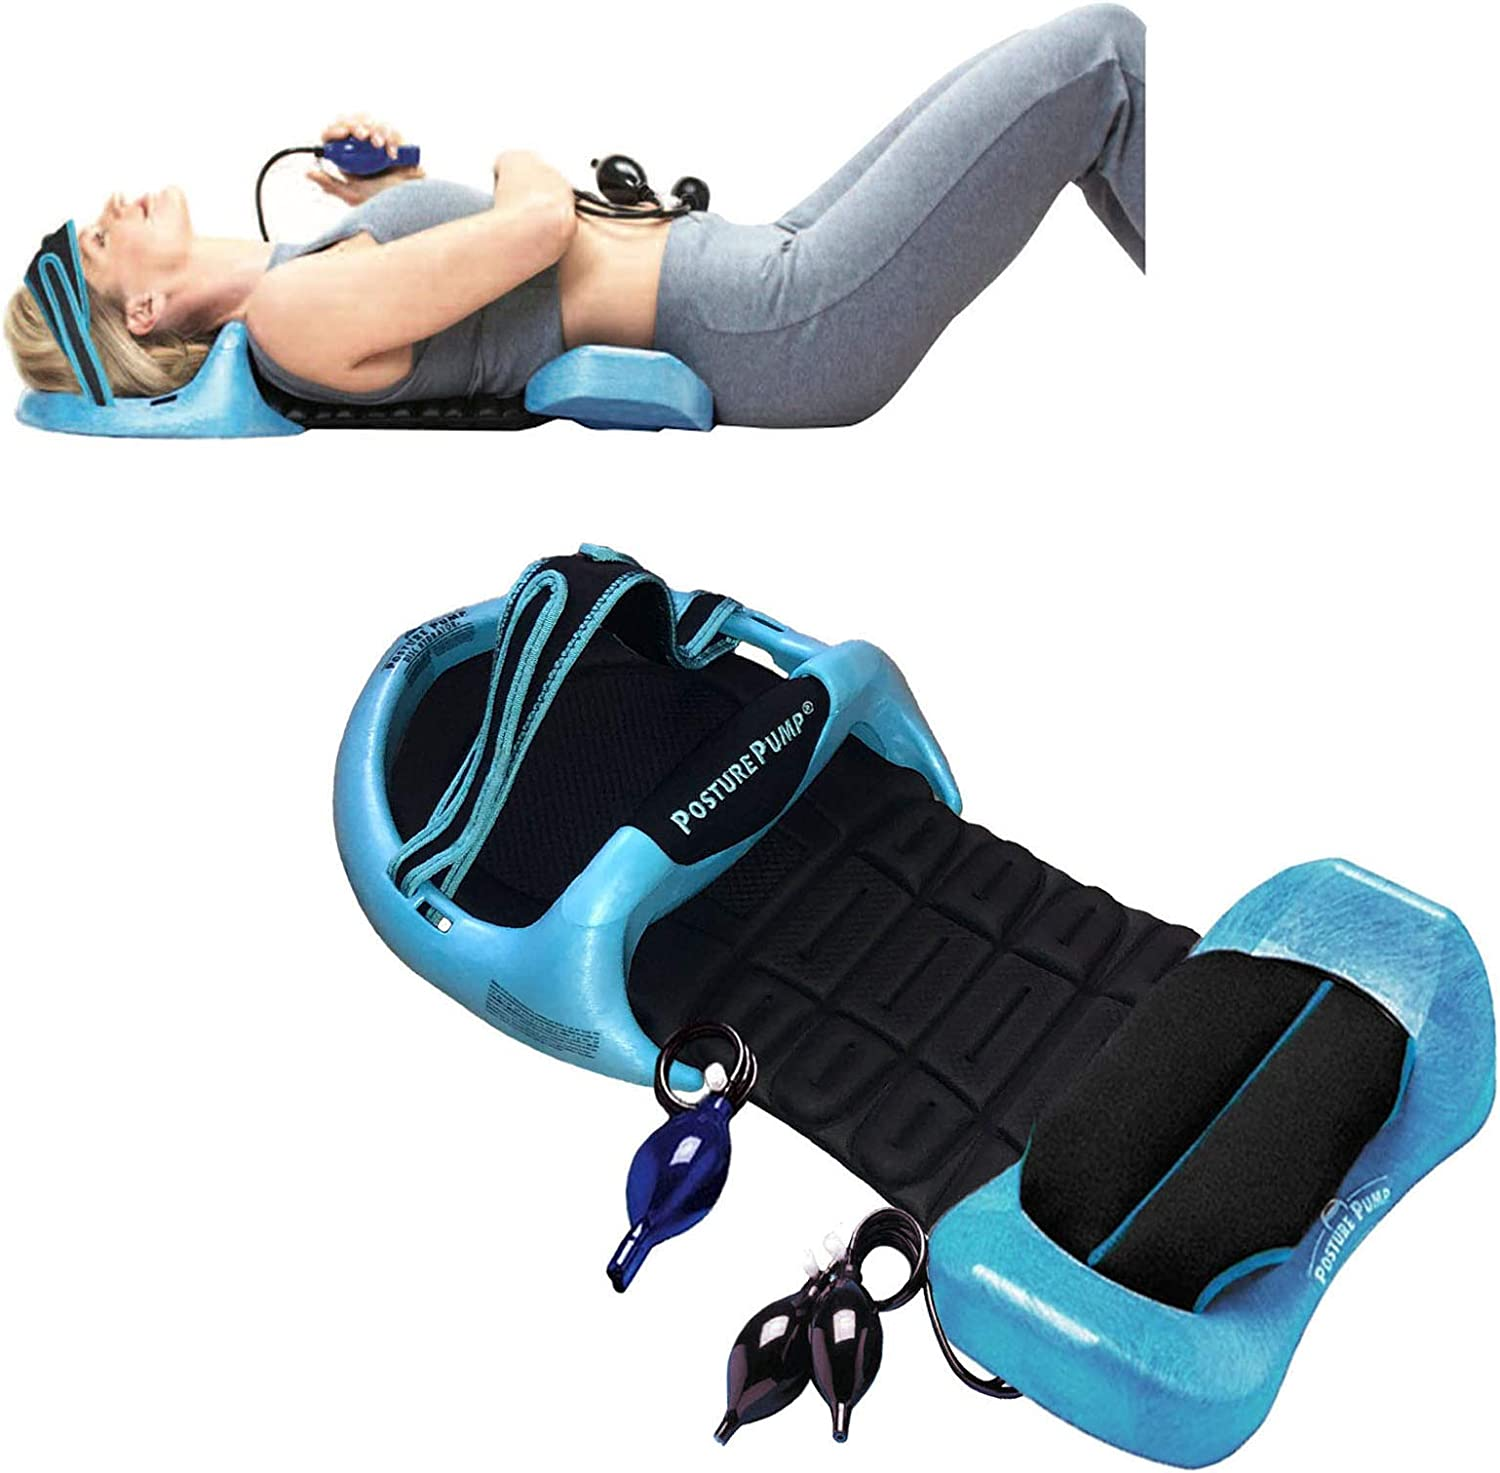 Posture Pump Relief for Neck and Back Pain - Deluxe Full Spine Model 4100-S (Single Air Cell Cervical) DISC HYDRATOR: Health & Personal Care